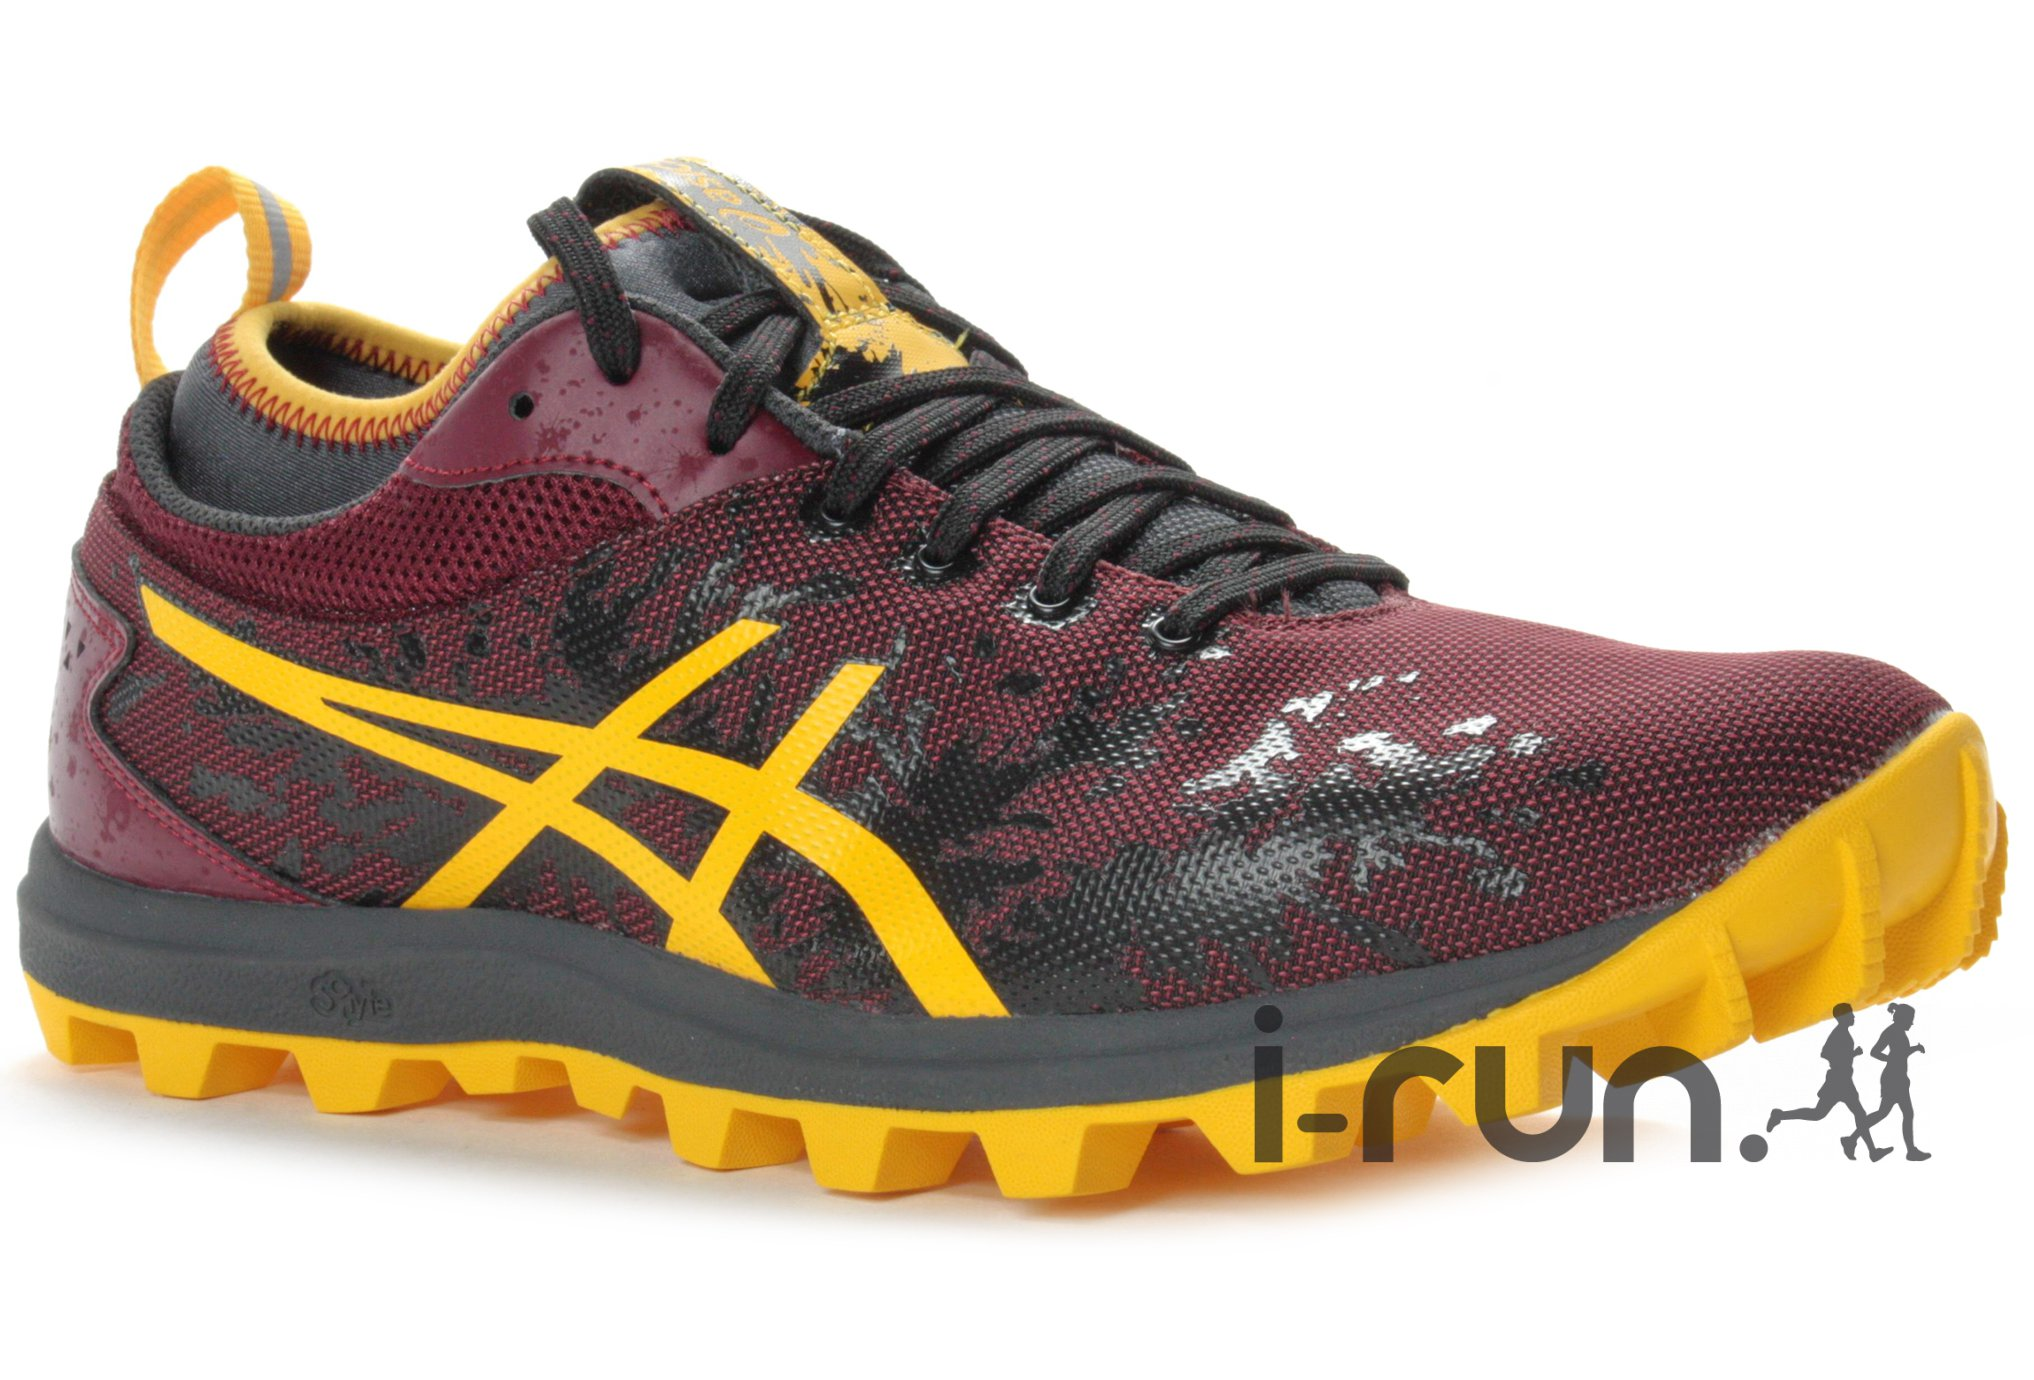 Fin chaussures Fin Pied Chaussure Serie Trail t0qn7wEI